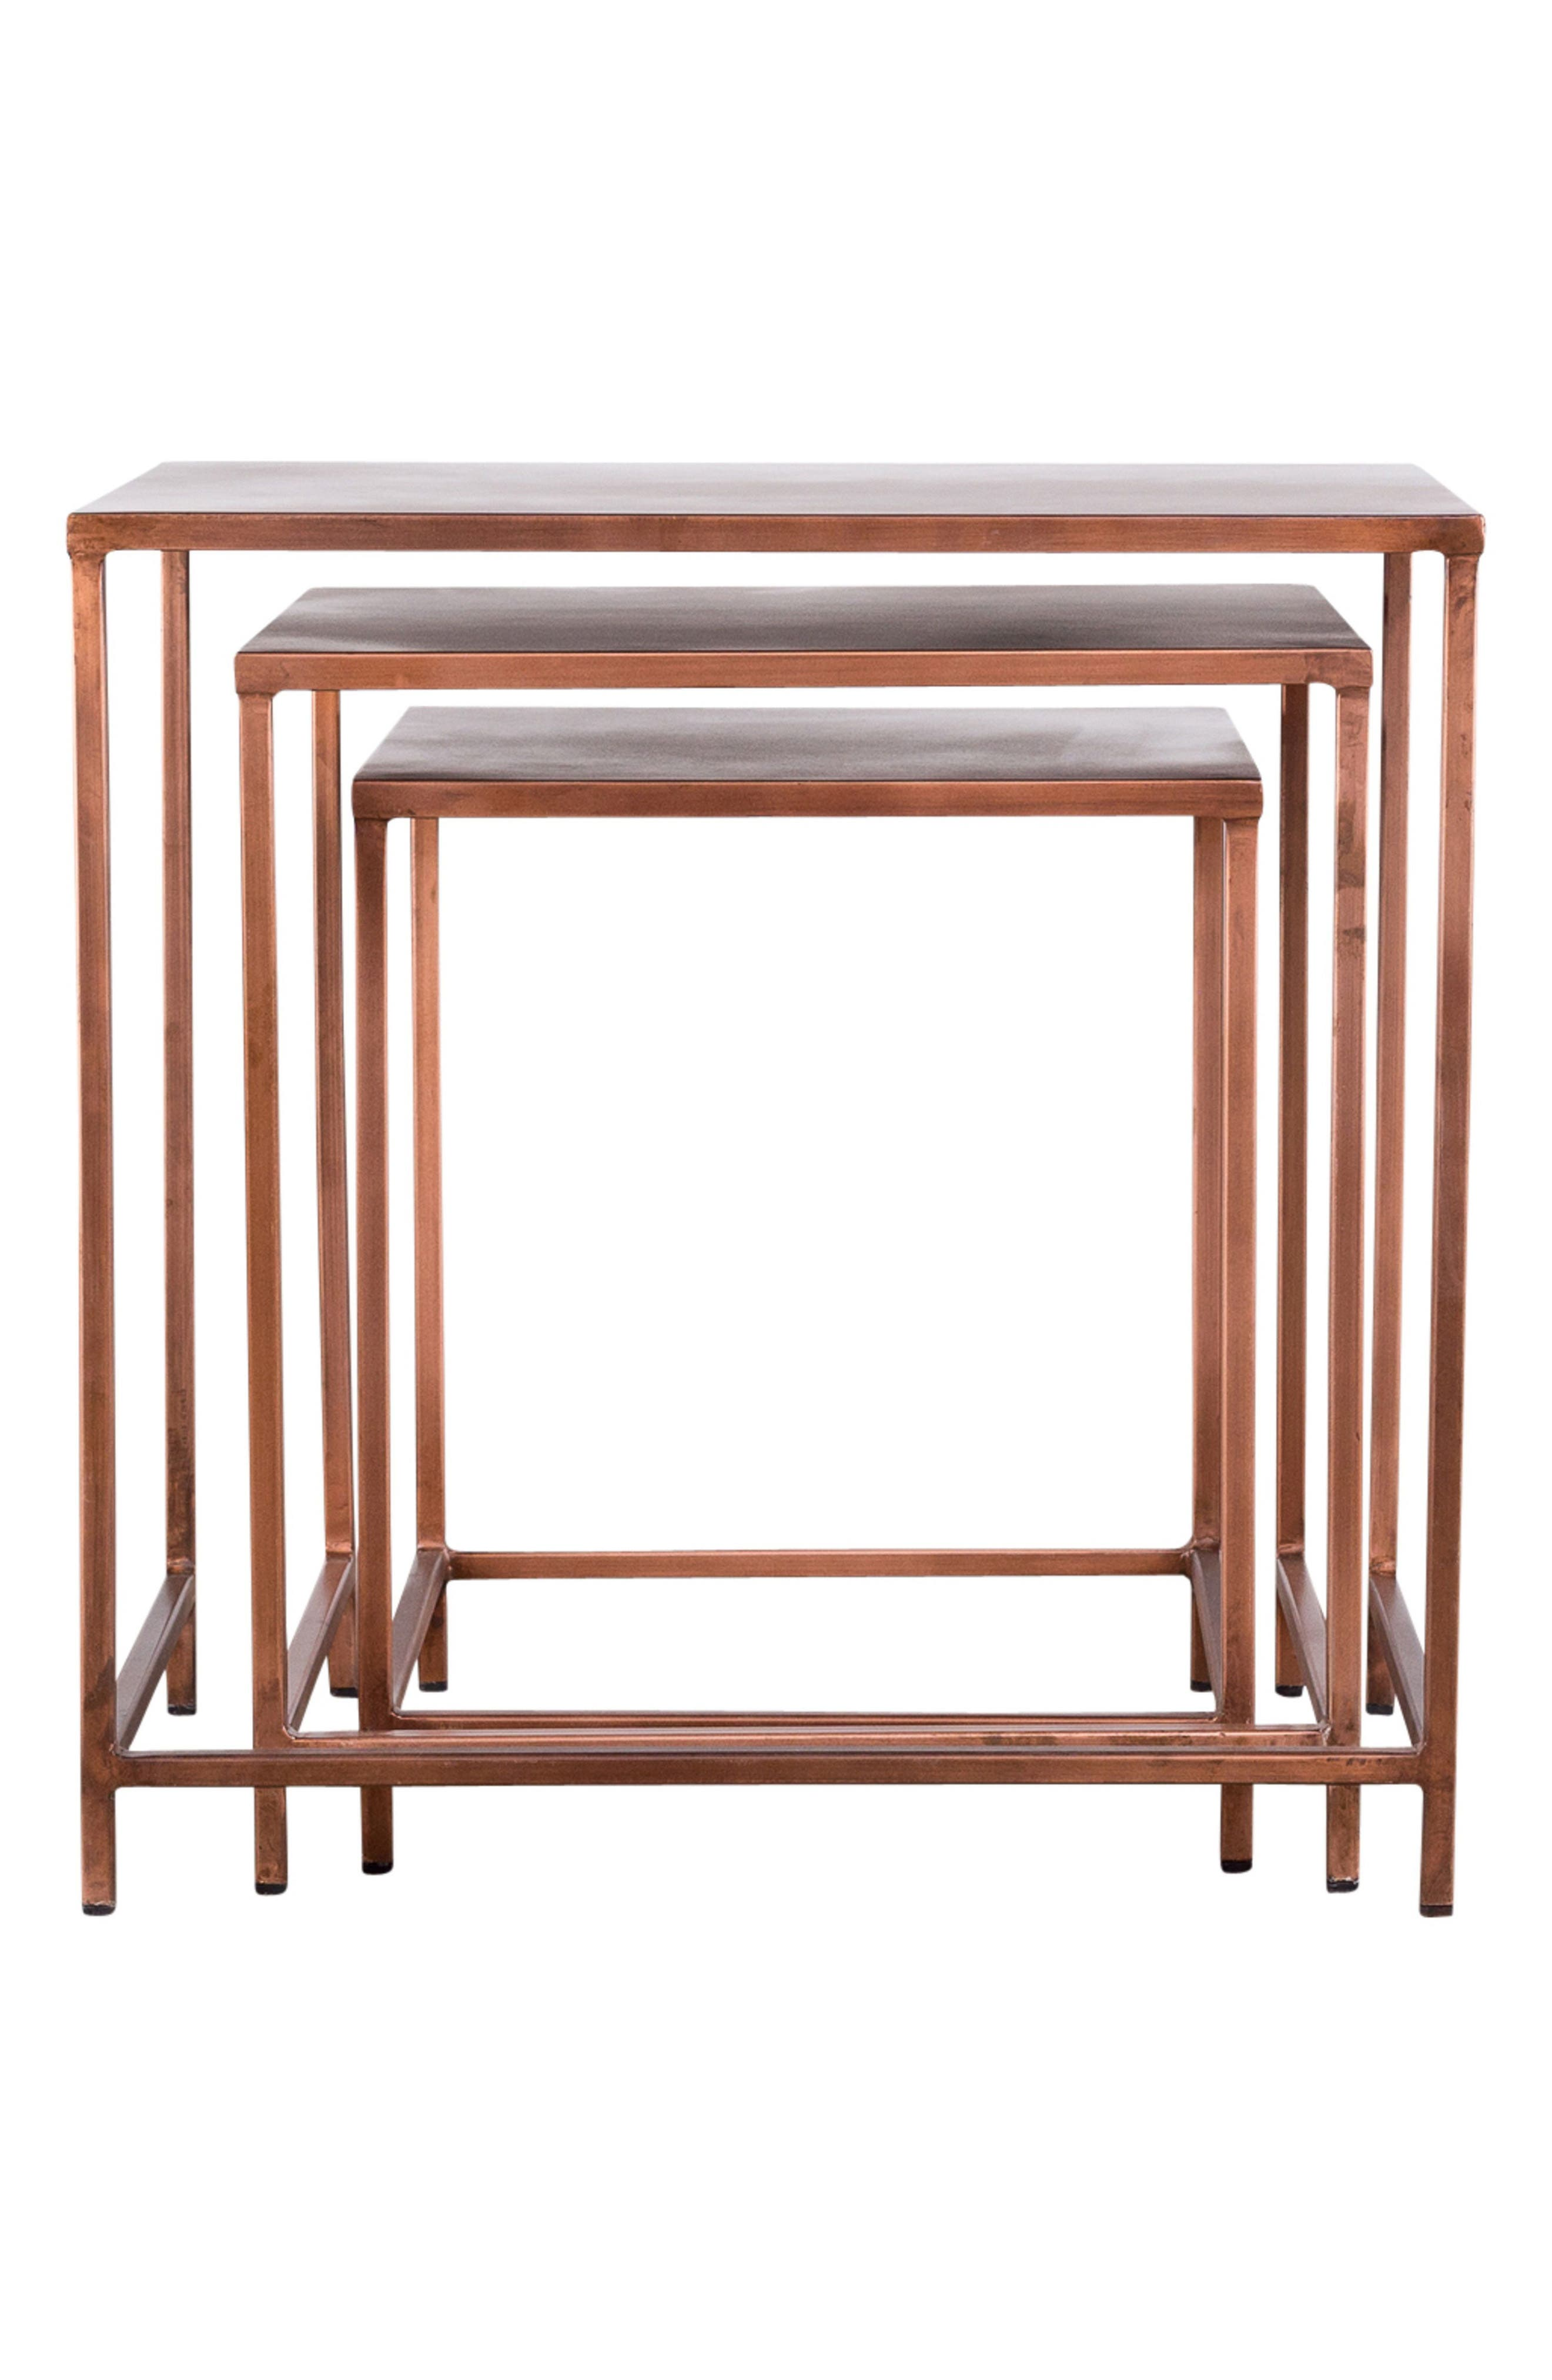 Pollock Set of 3 Nesting Tables,                             Main thumbnail 1, color,                             220